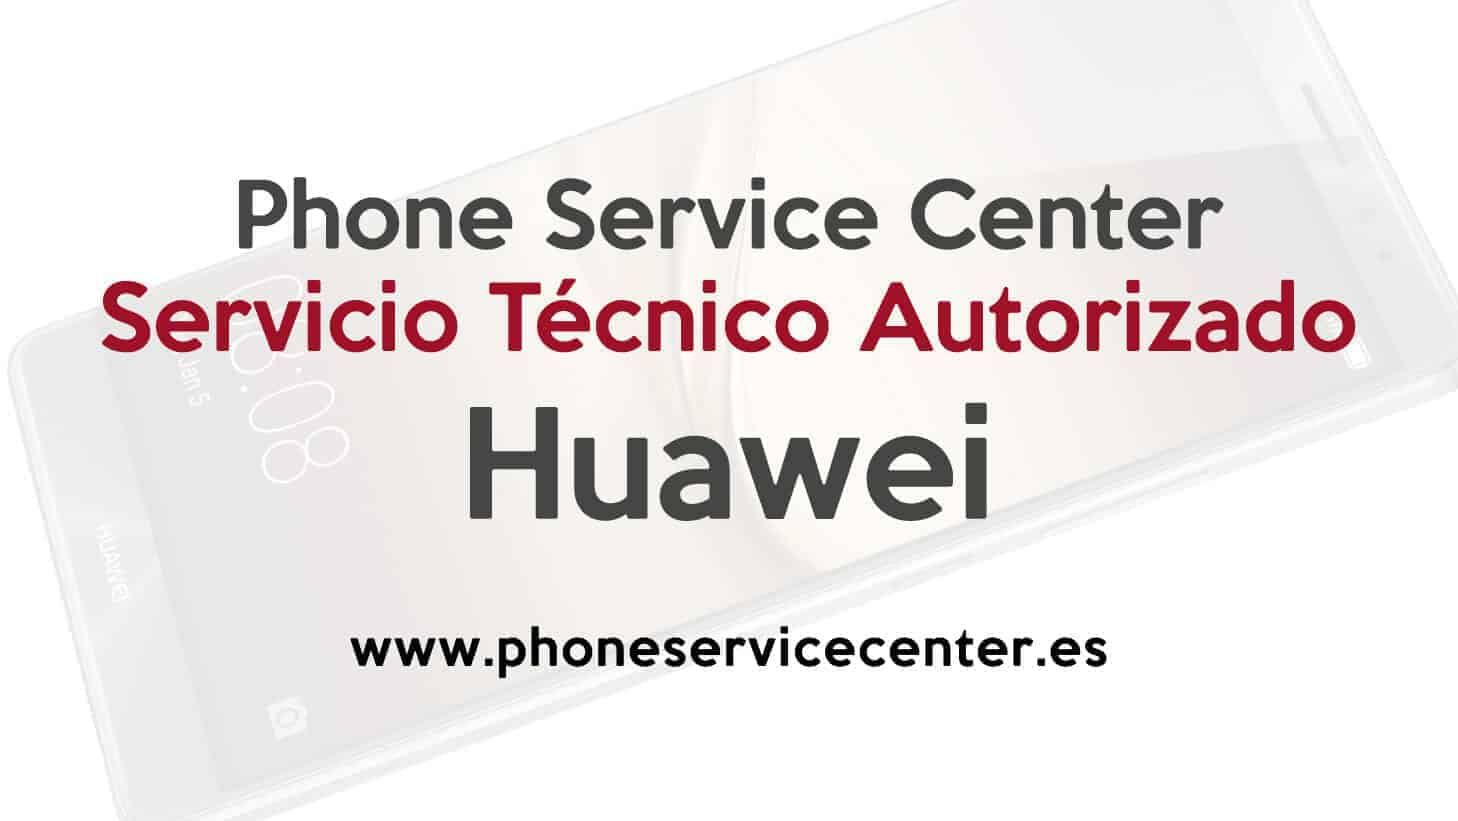 Servicio Tecnico Huawei Phone Service Center